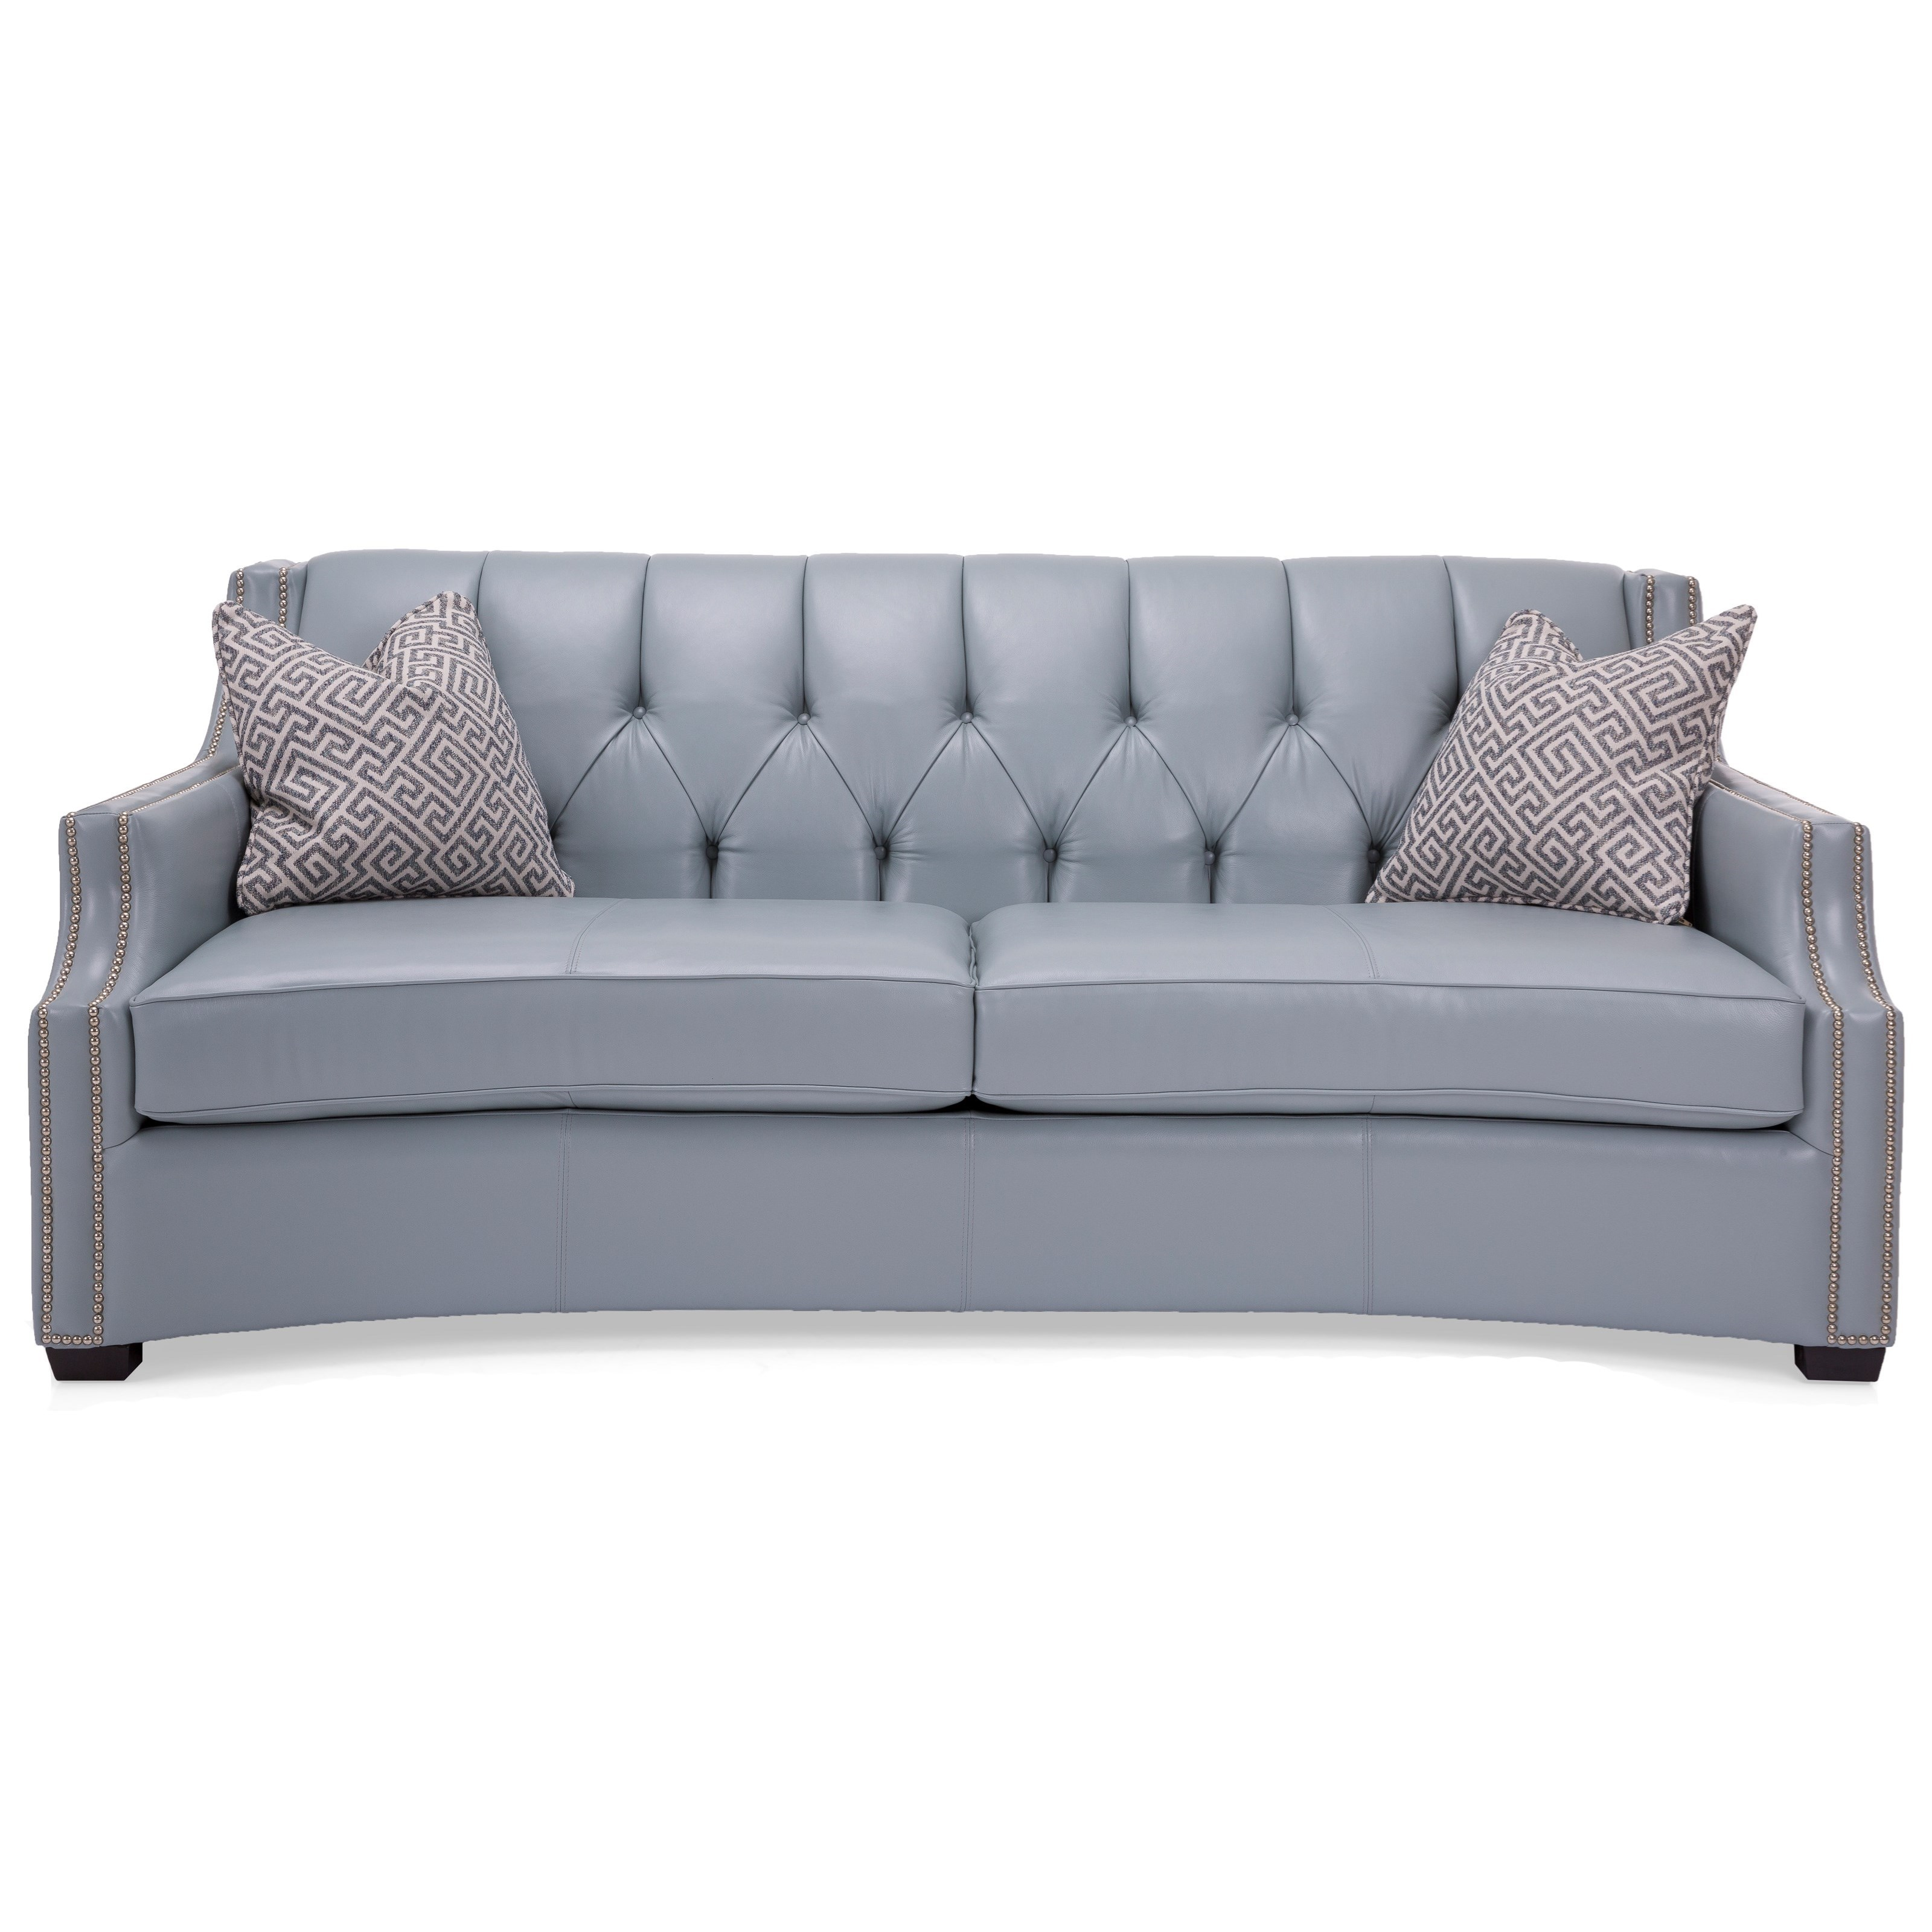 2789 Sofa by Taelor Designs at Bennett's Furniture and Mattresses